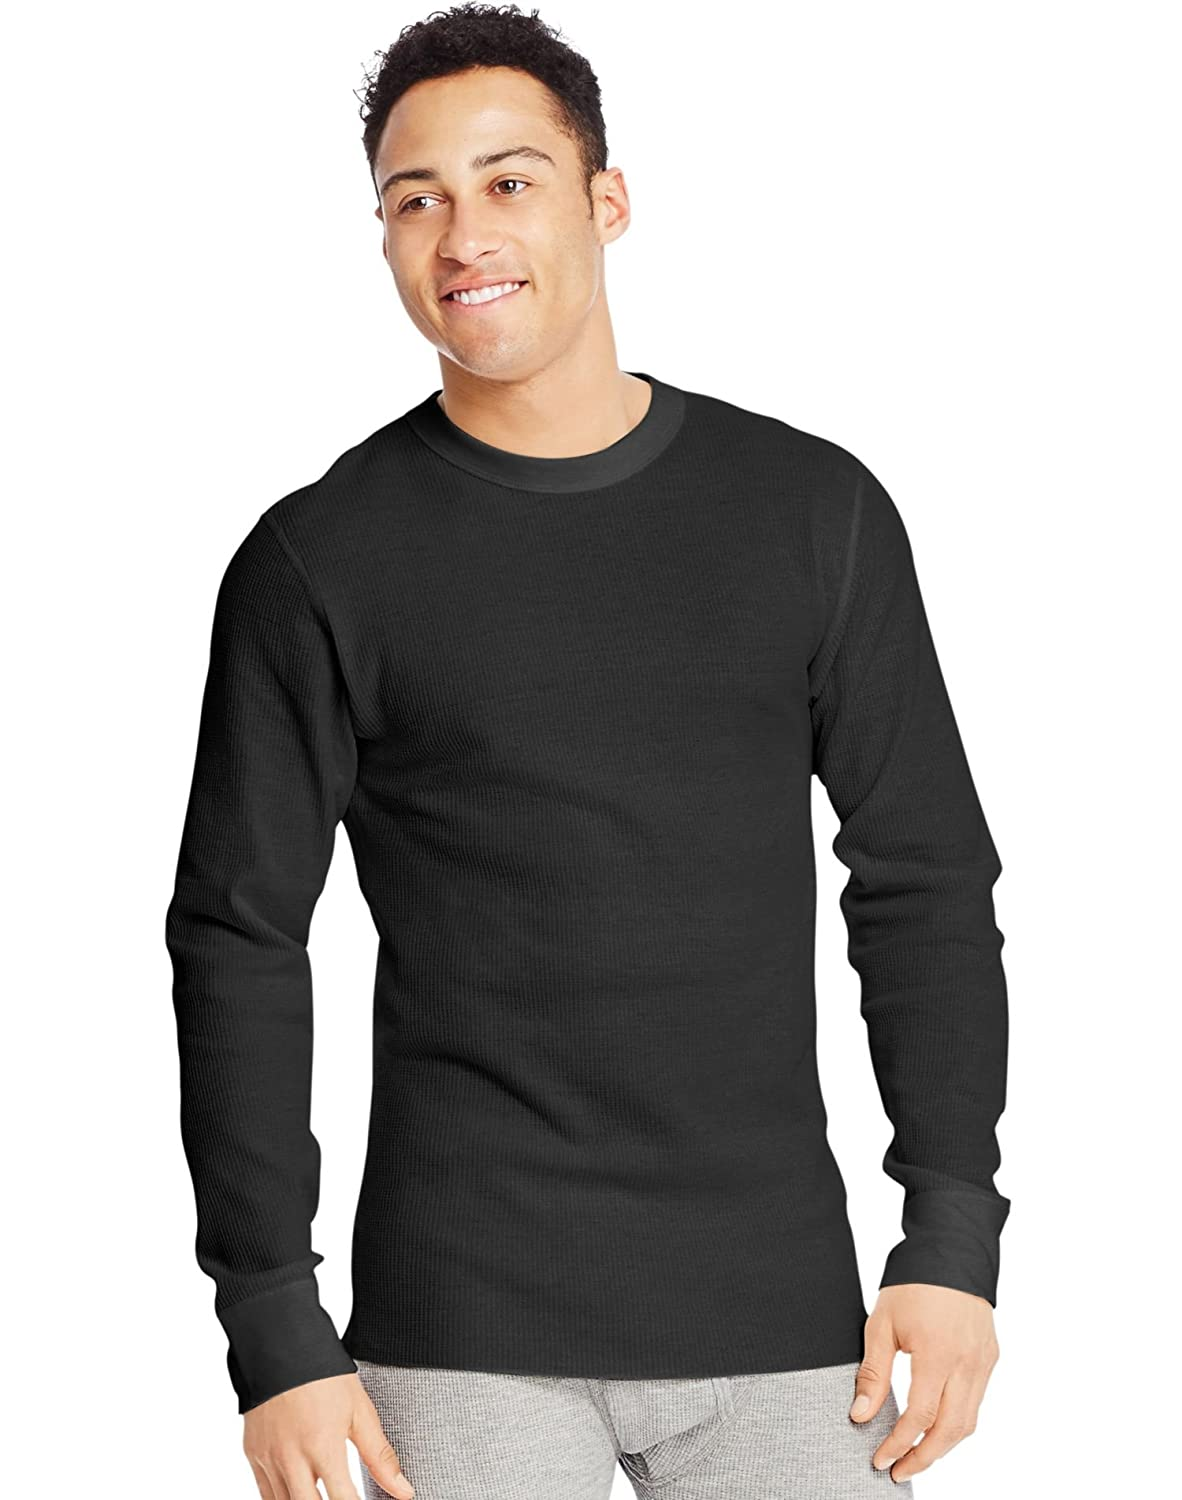 Hanes Mens UltimateTM X Temp Organic Cotton Tall Long Sleeve Crewneck Thermal 28580